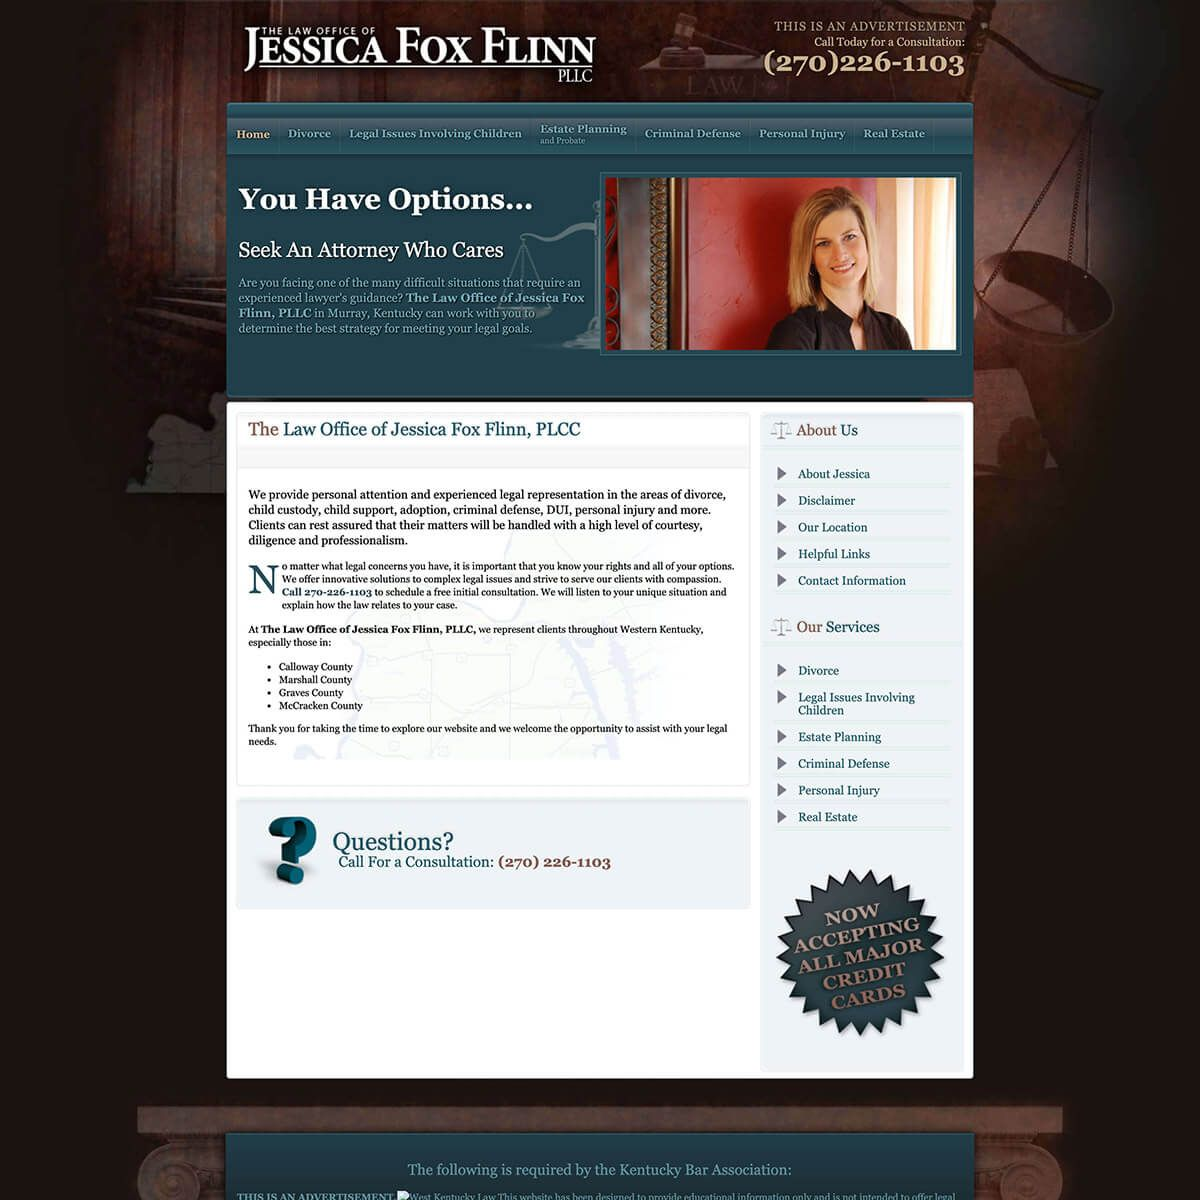 Jessica Fox Flinn website by EyeSite Creations